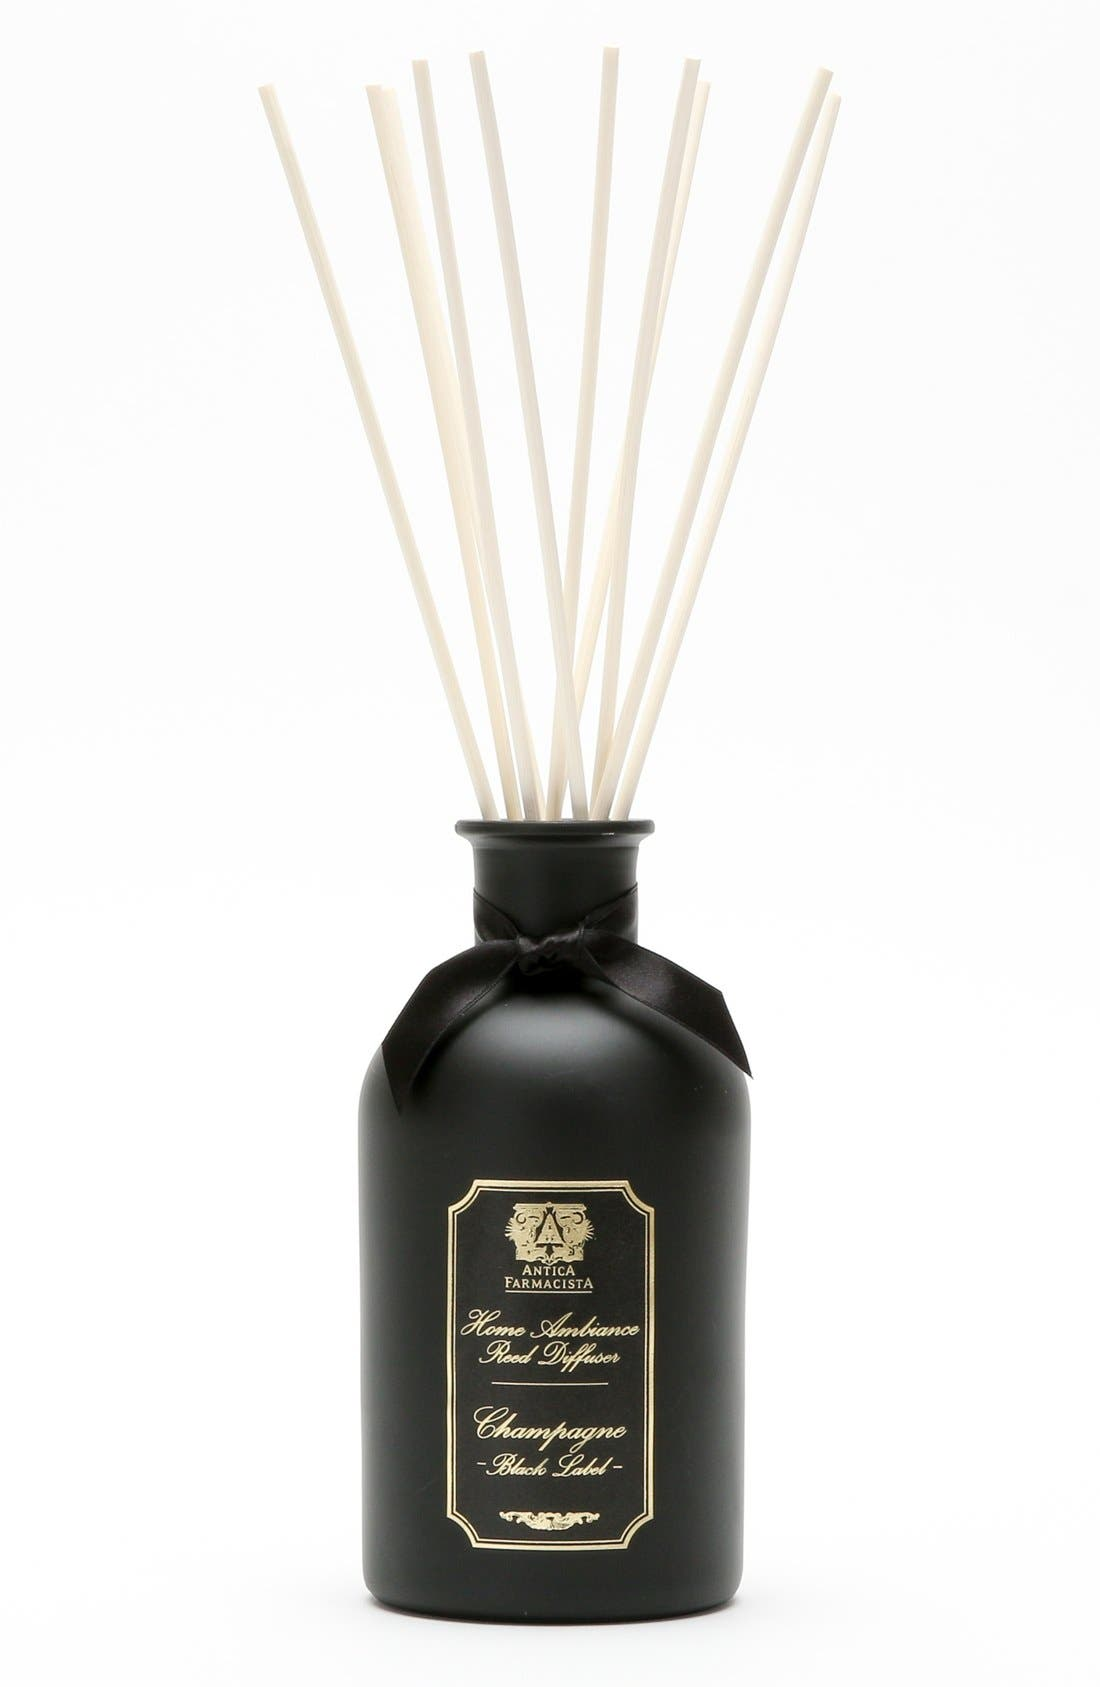 Antica Farmacista 'Black Label - Champagne' Home Ambiance Perfume (Limited Edition)